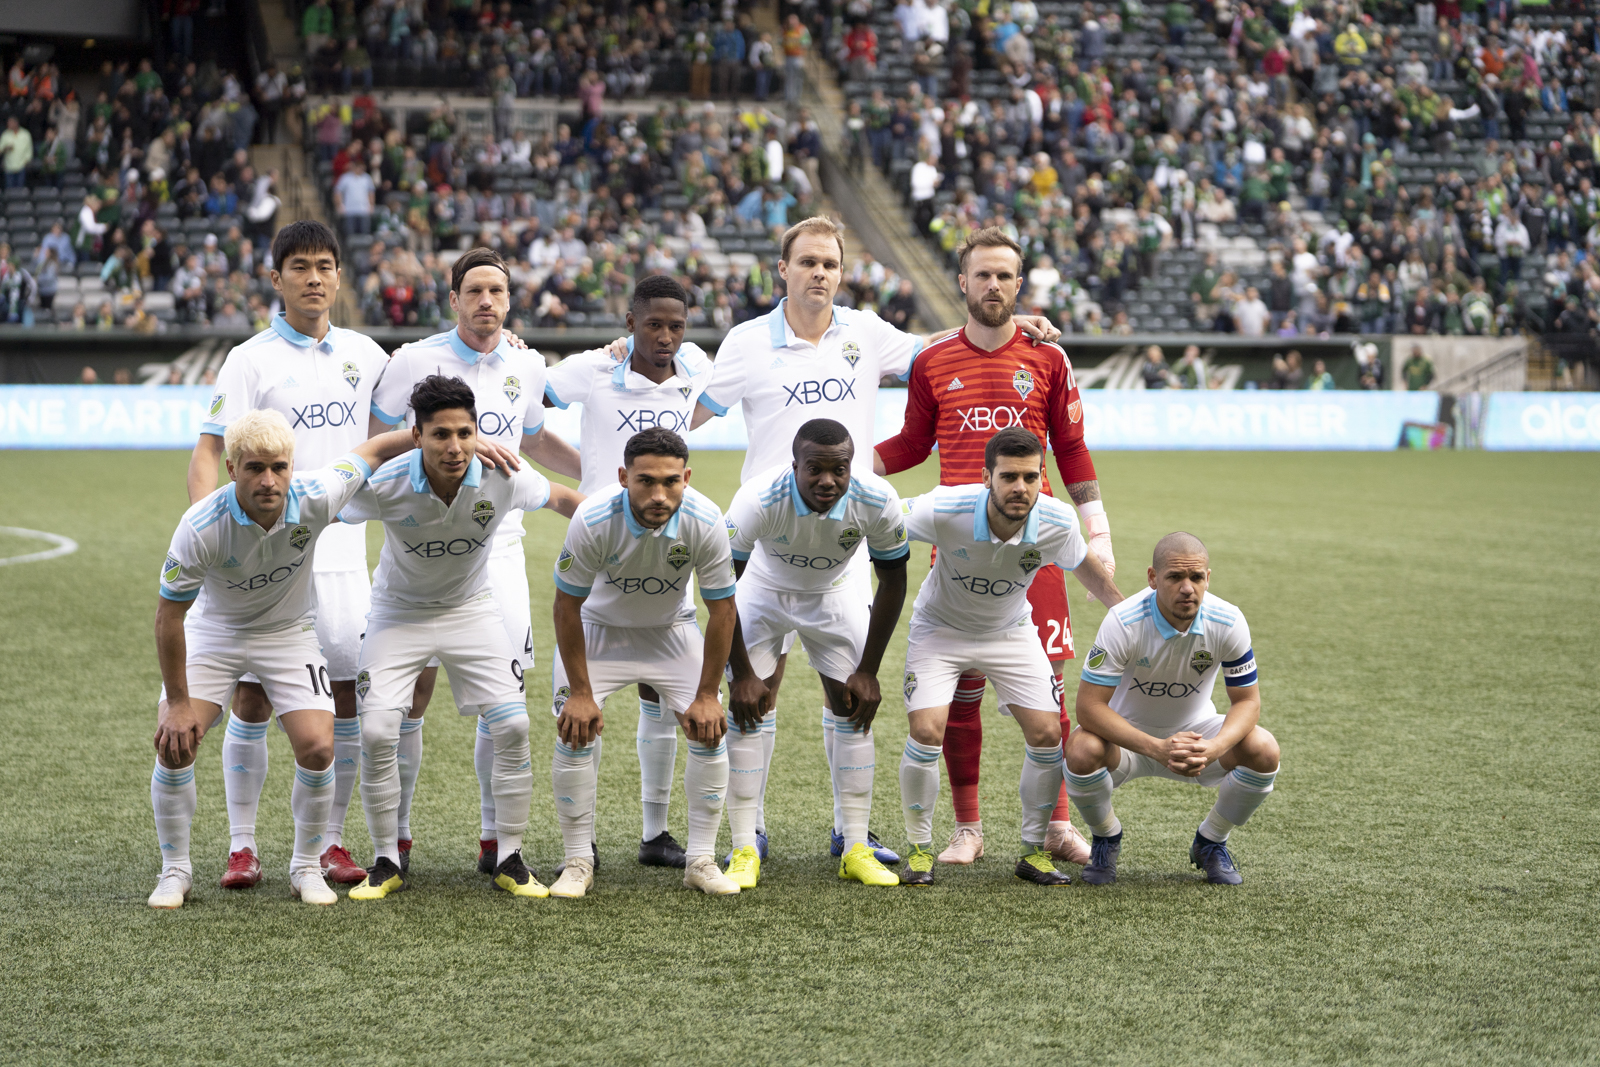 Sounders vs Timber39.jpg